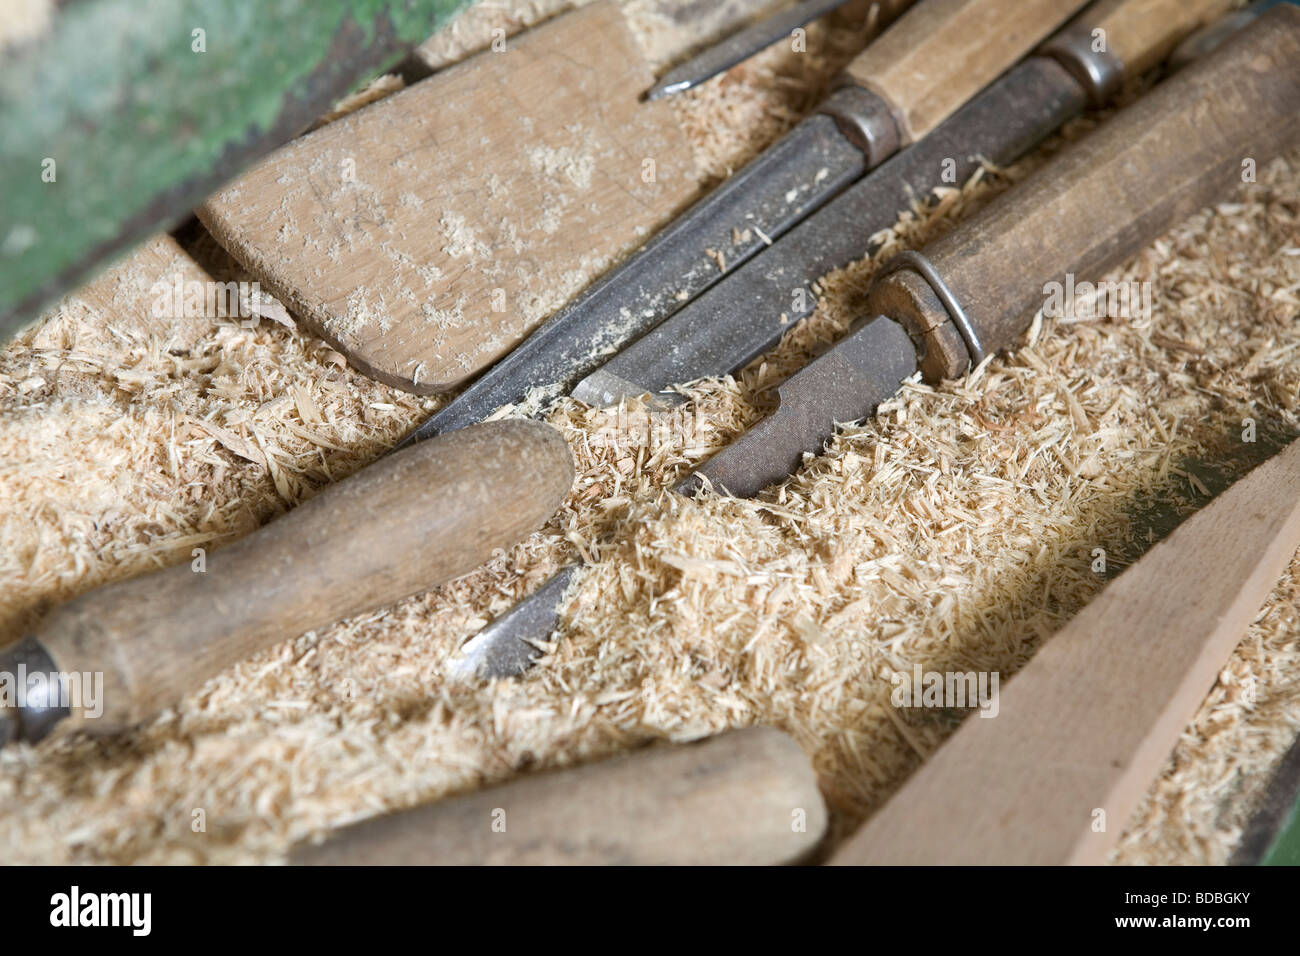 still life of knifes for cutting wood - Stock Image